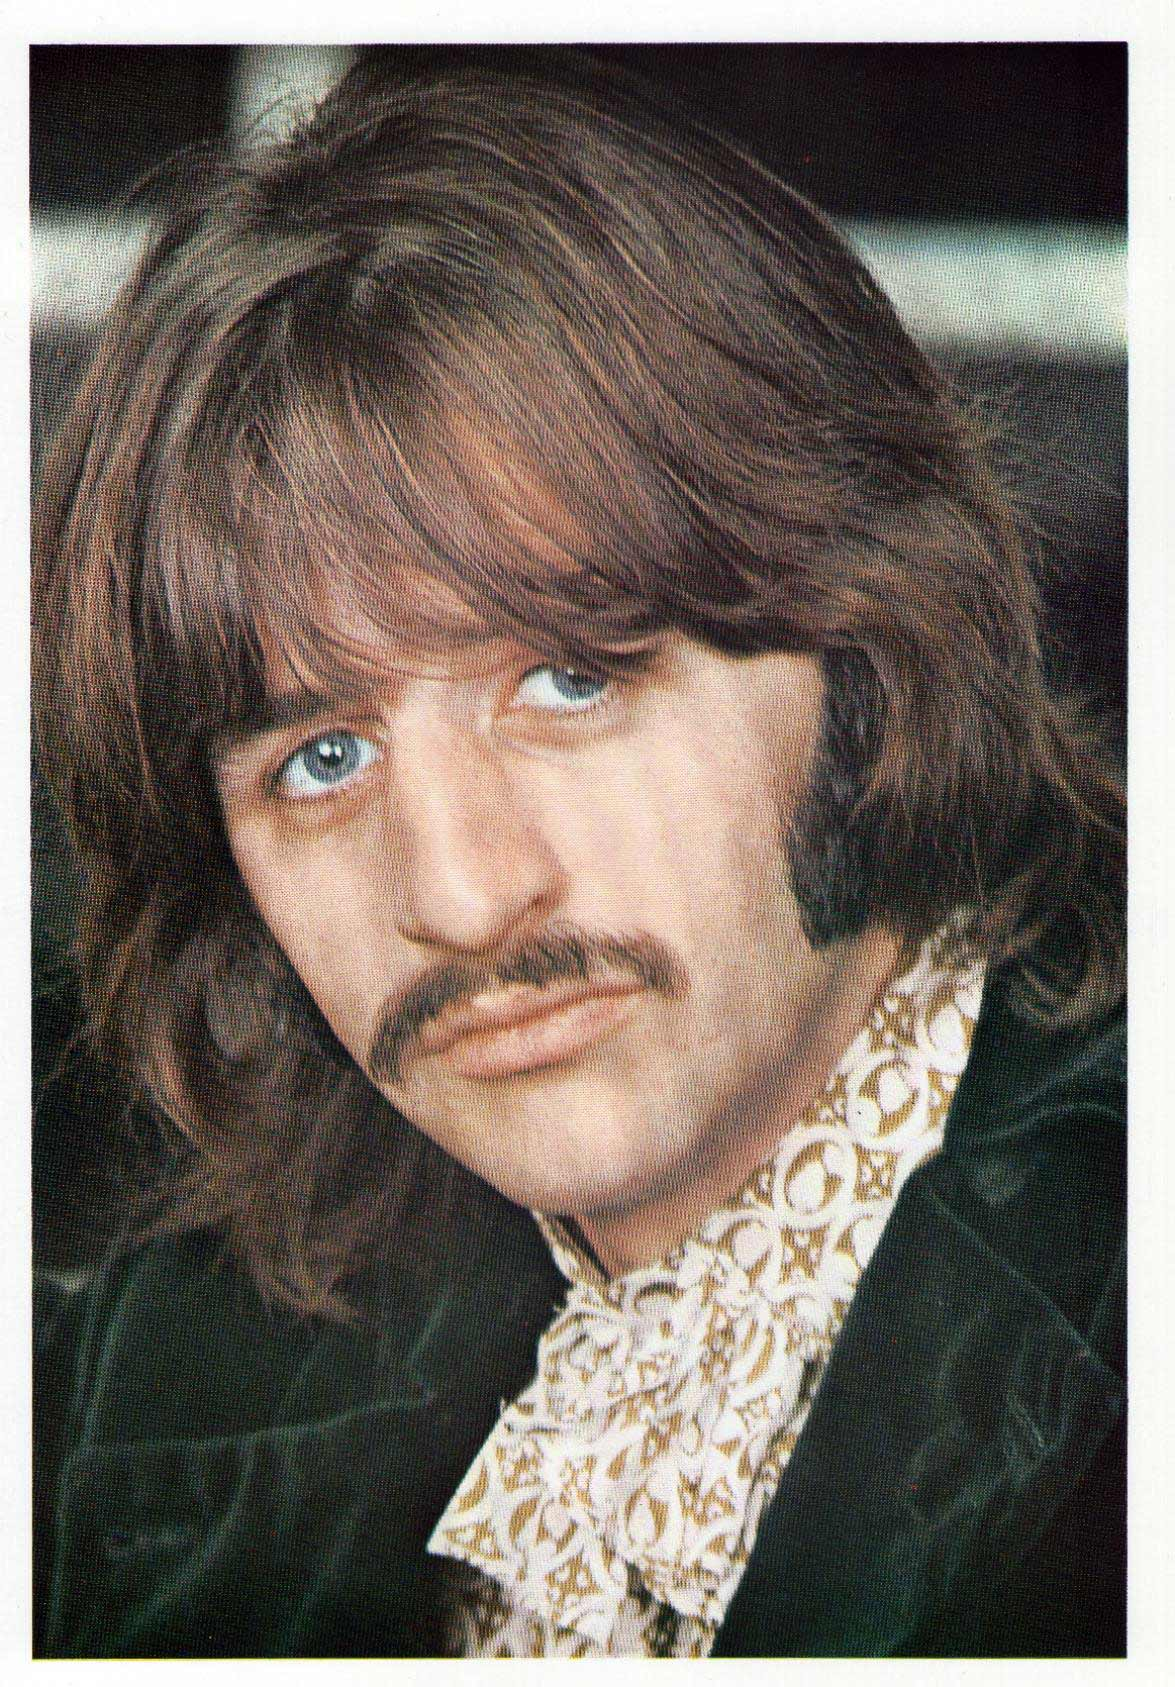 White Album portrait: Ringo Starr